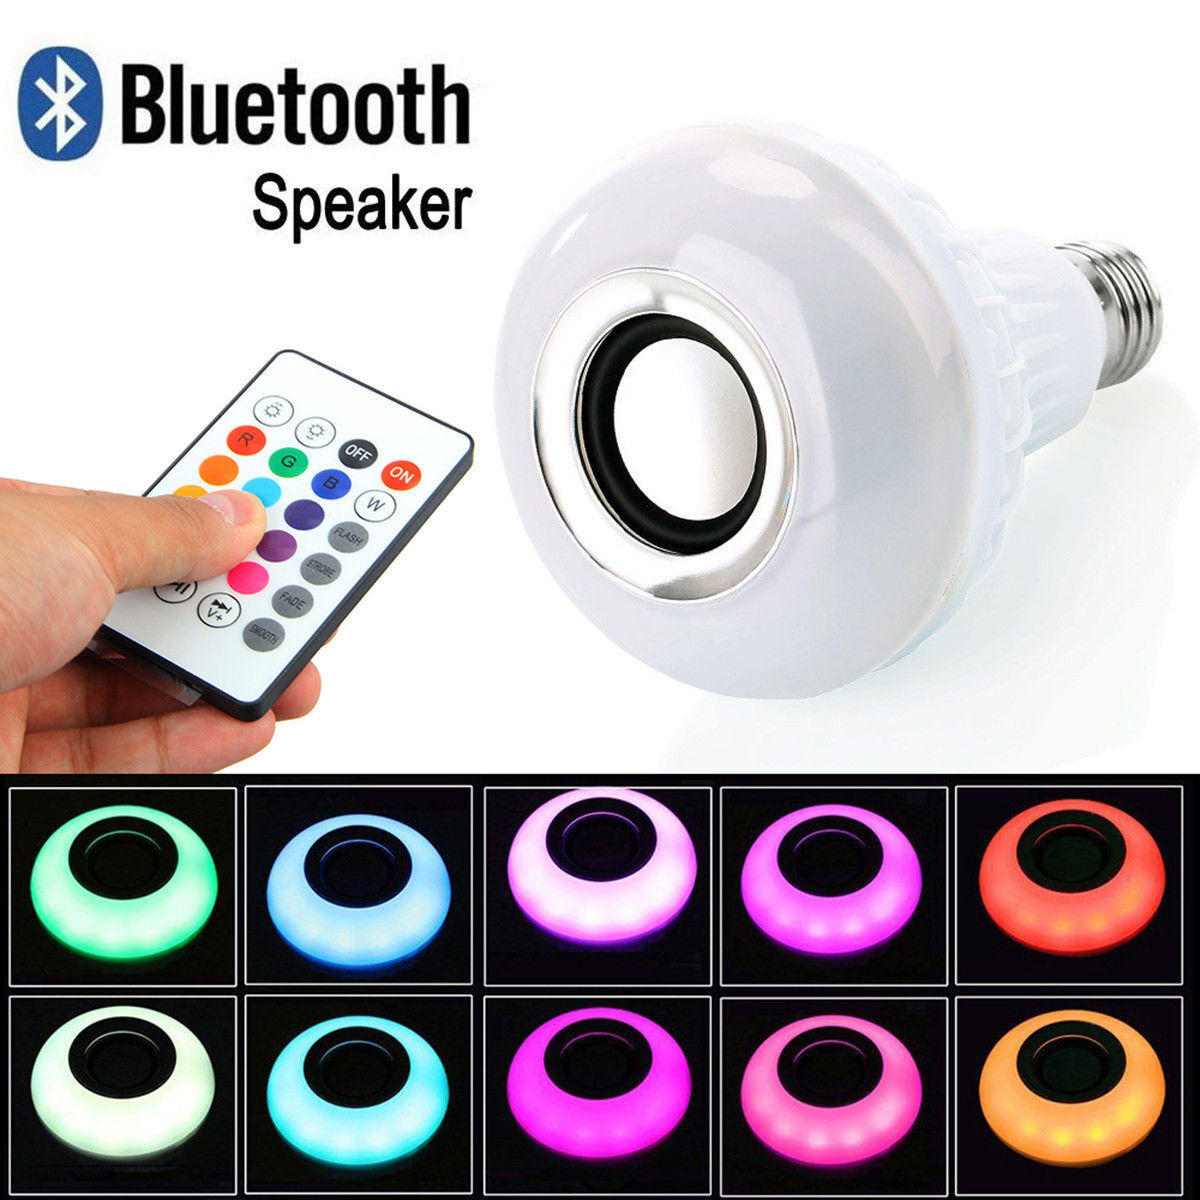 12w e27 led rgb sans fil haut parleur bluetooth ampoule lampe de musique loign ebay. Black Bedroom Furniture Sets. Home Design Ideas